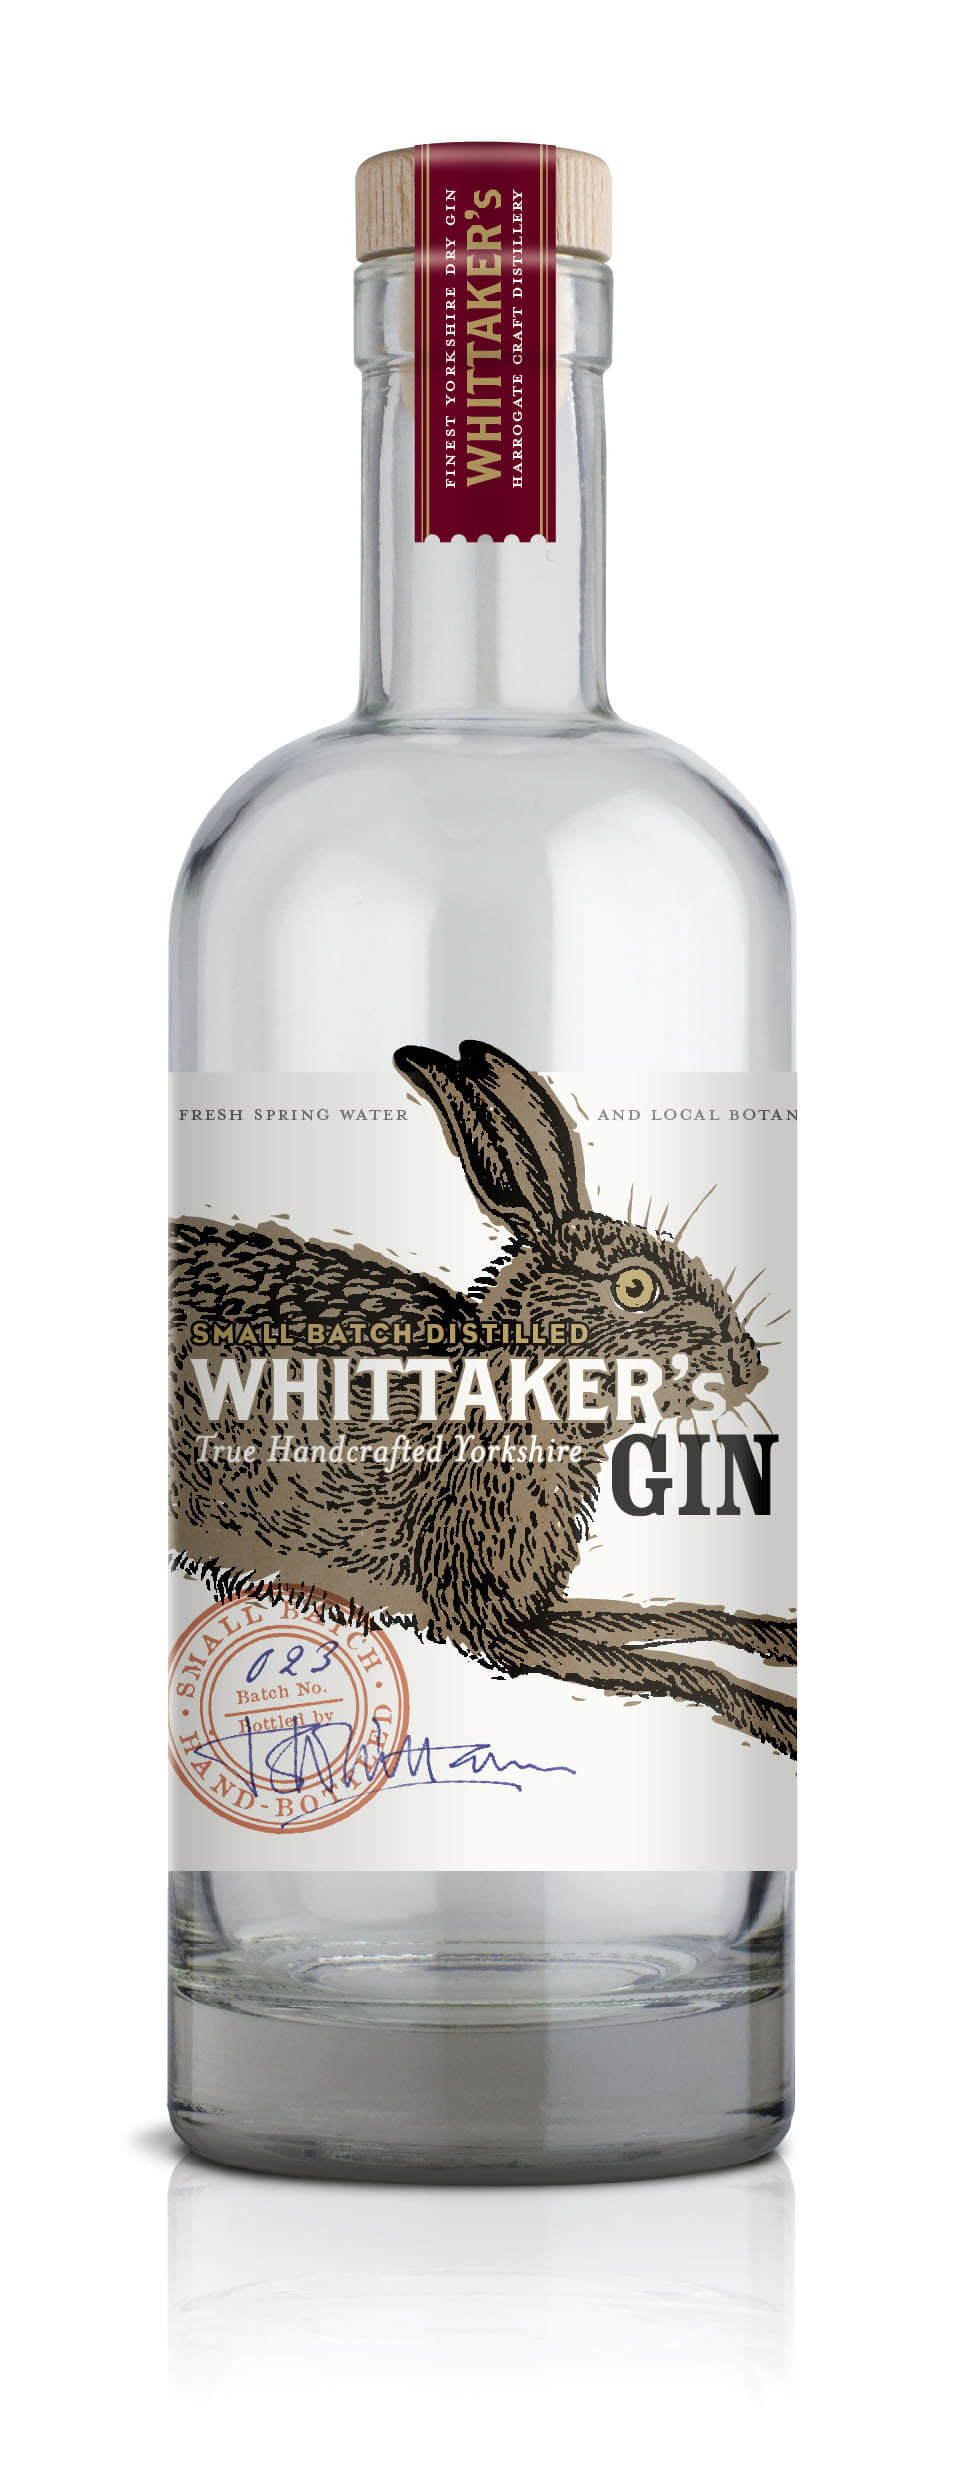 Whittaker's Gin Bottle Image - ESCAPEMENT Magazine by Angus Davies